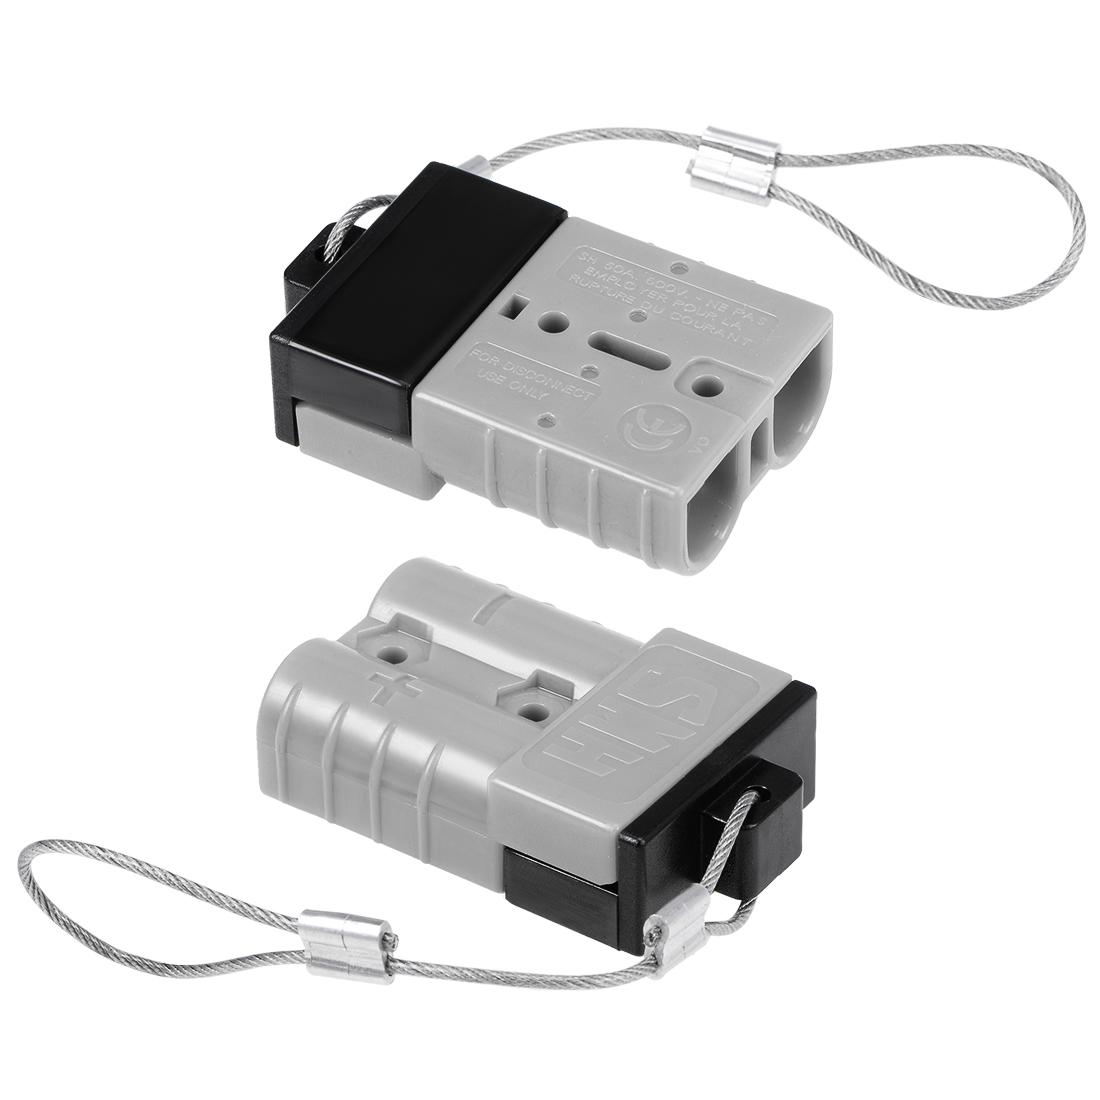 6 Gauge Battery Quick Connect Disconnect 50A Wire Harness Connector, Grey, 2pcs